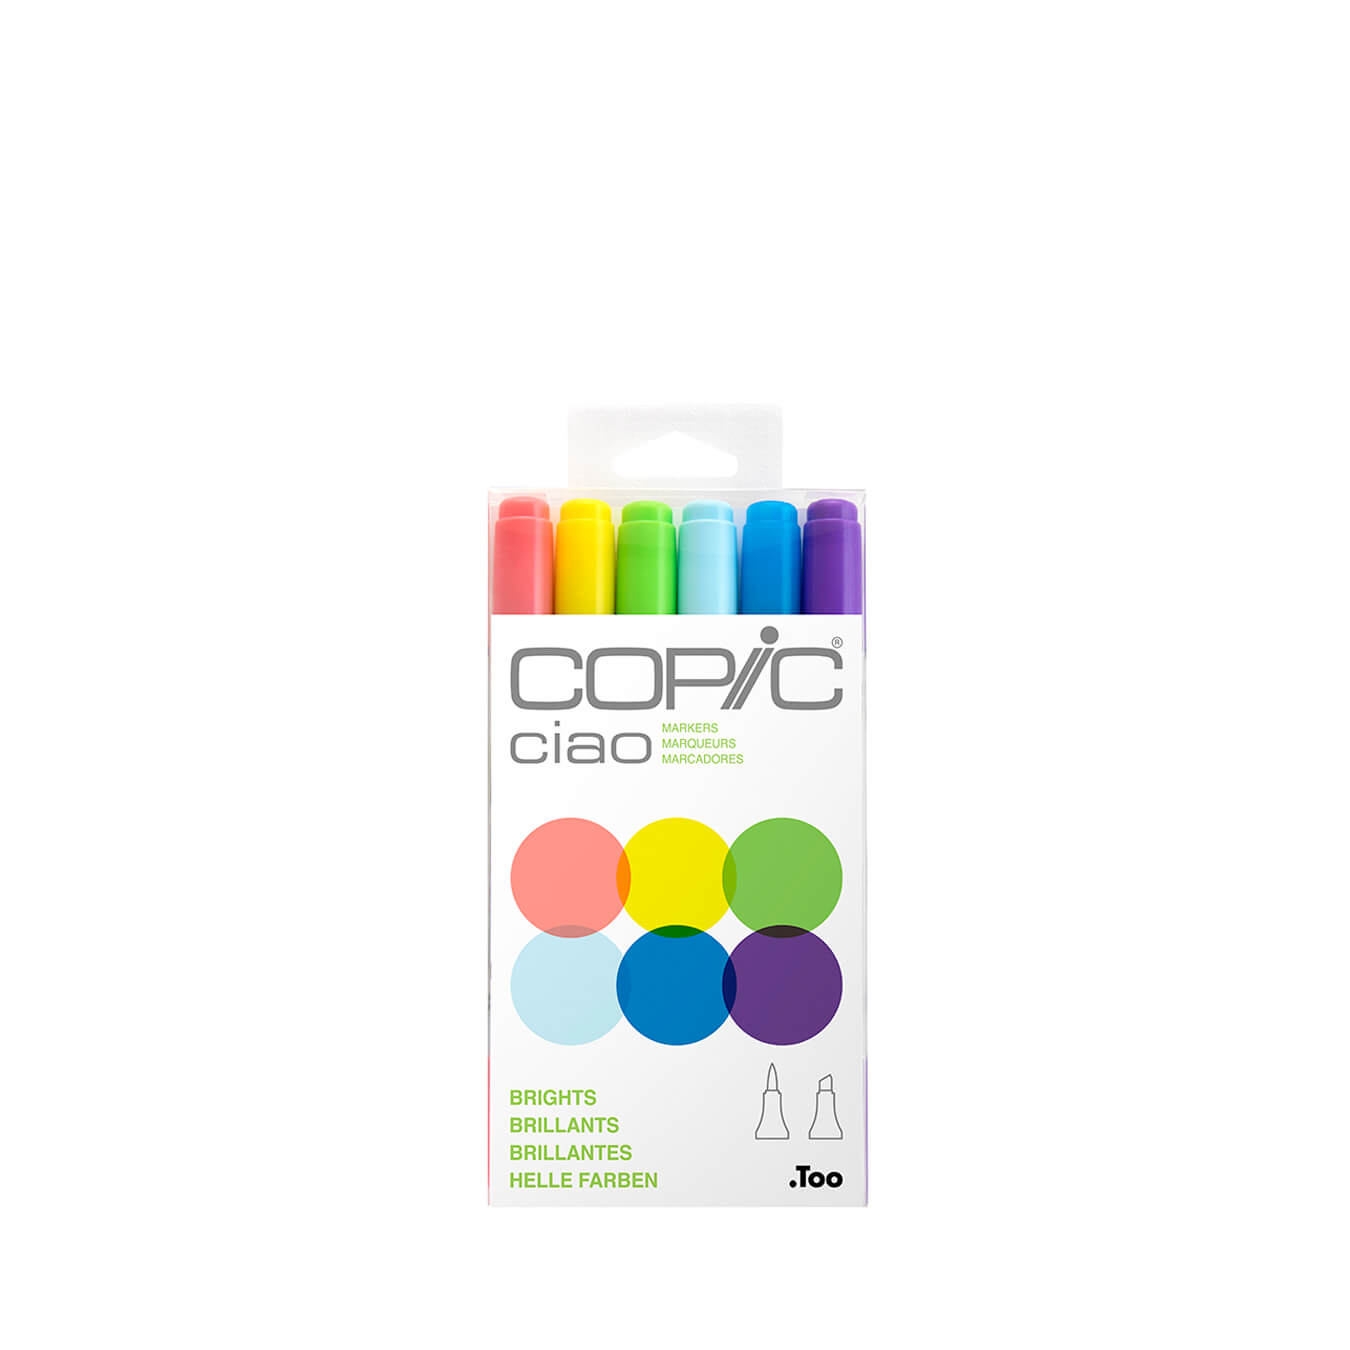 Copic Ciao 6 colors set Brights